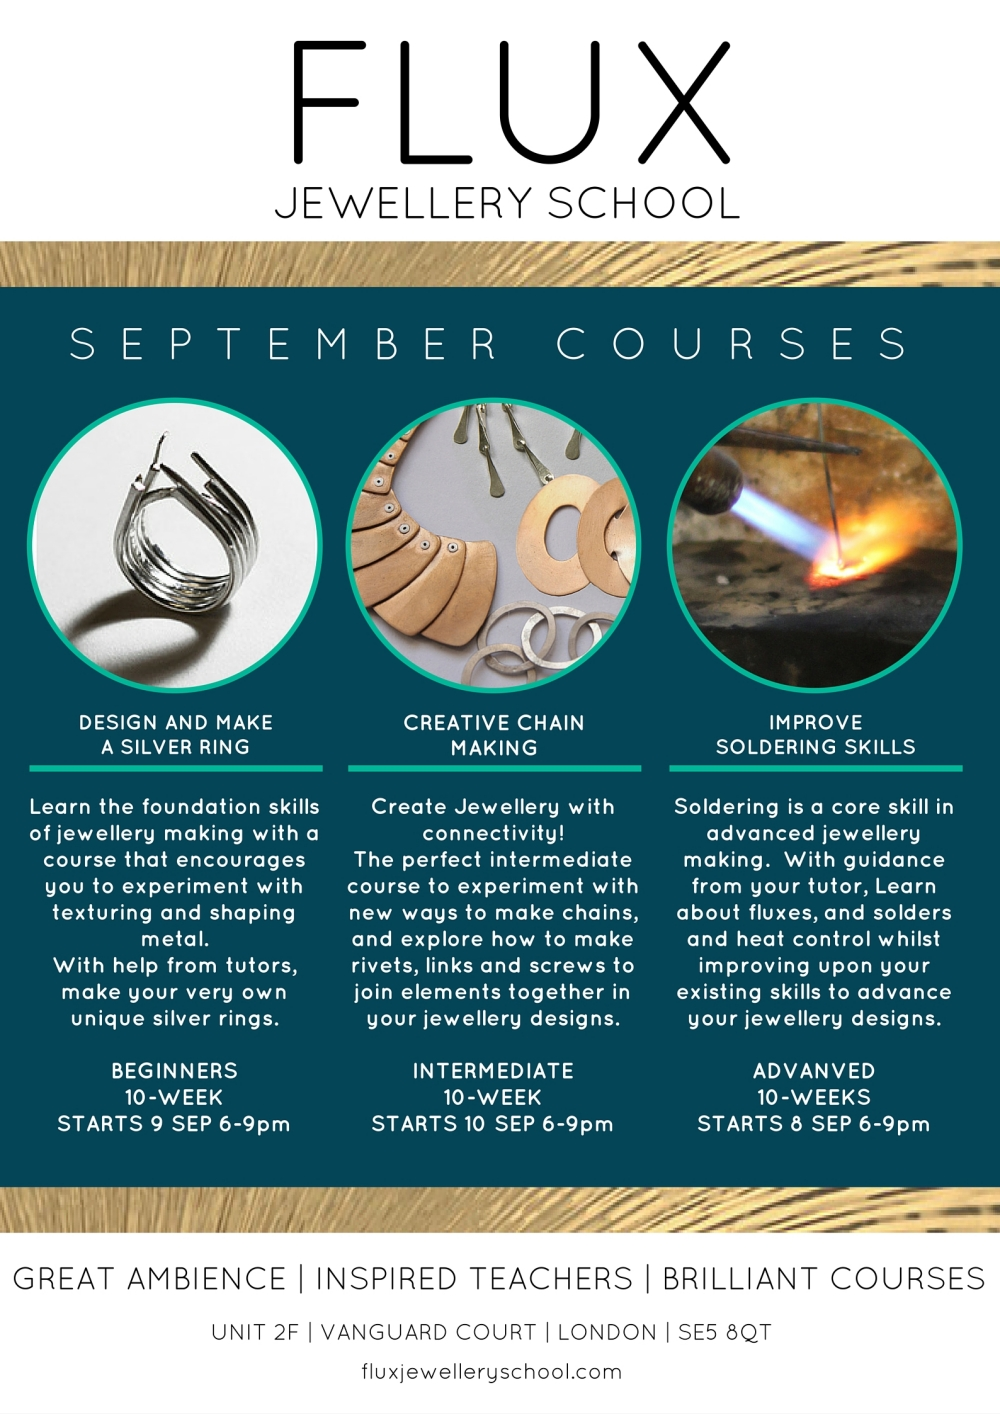 Jewellery courses starting in London for september 2015